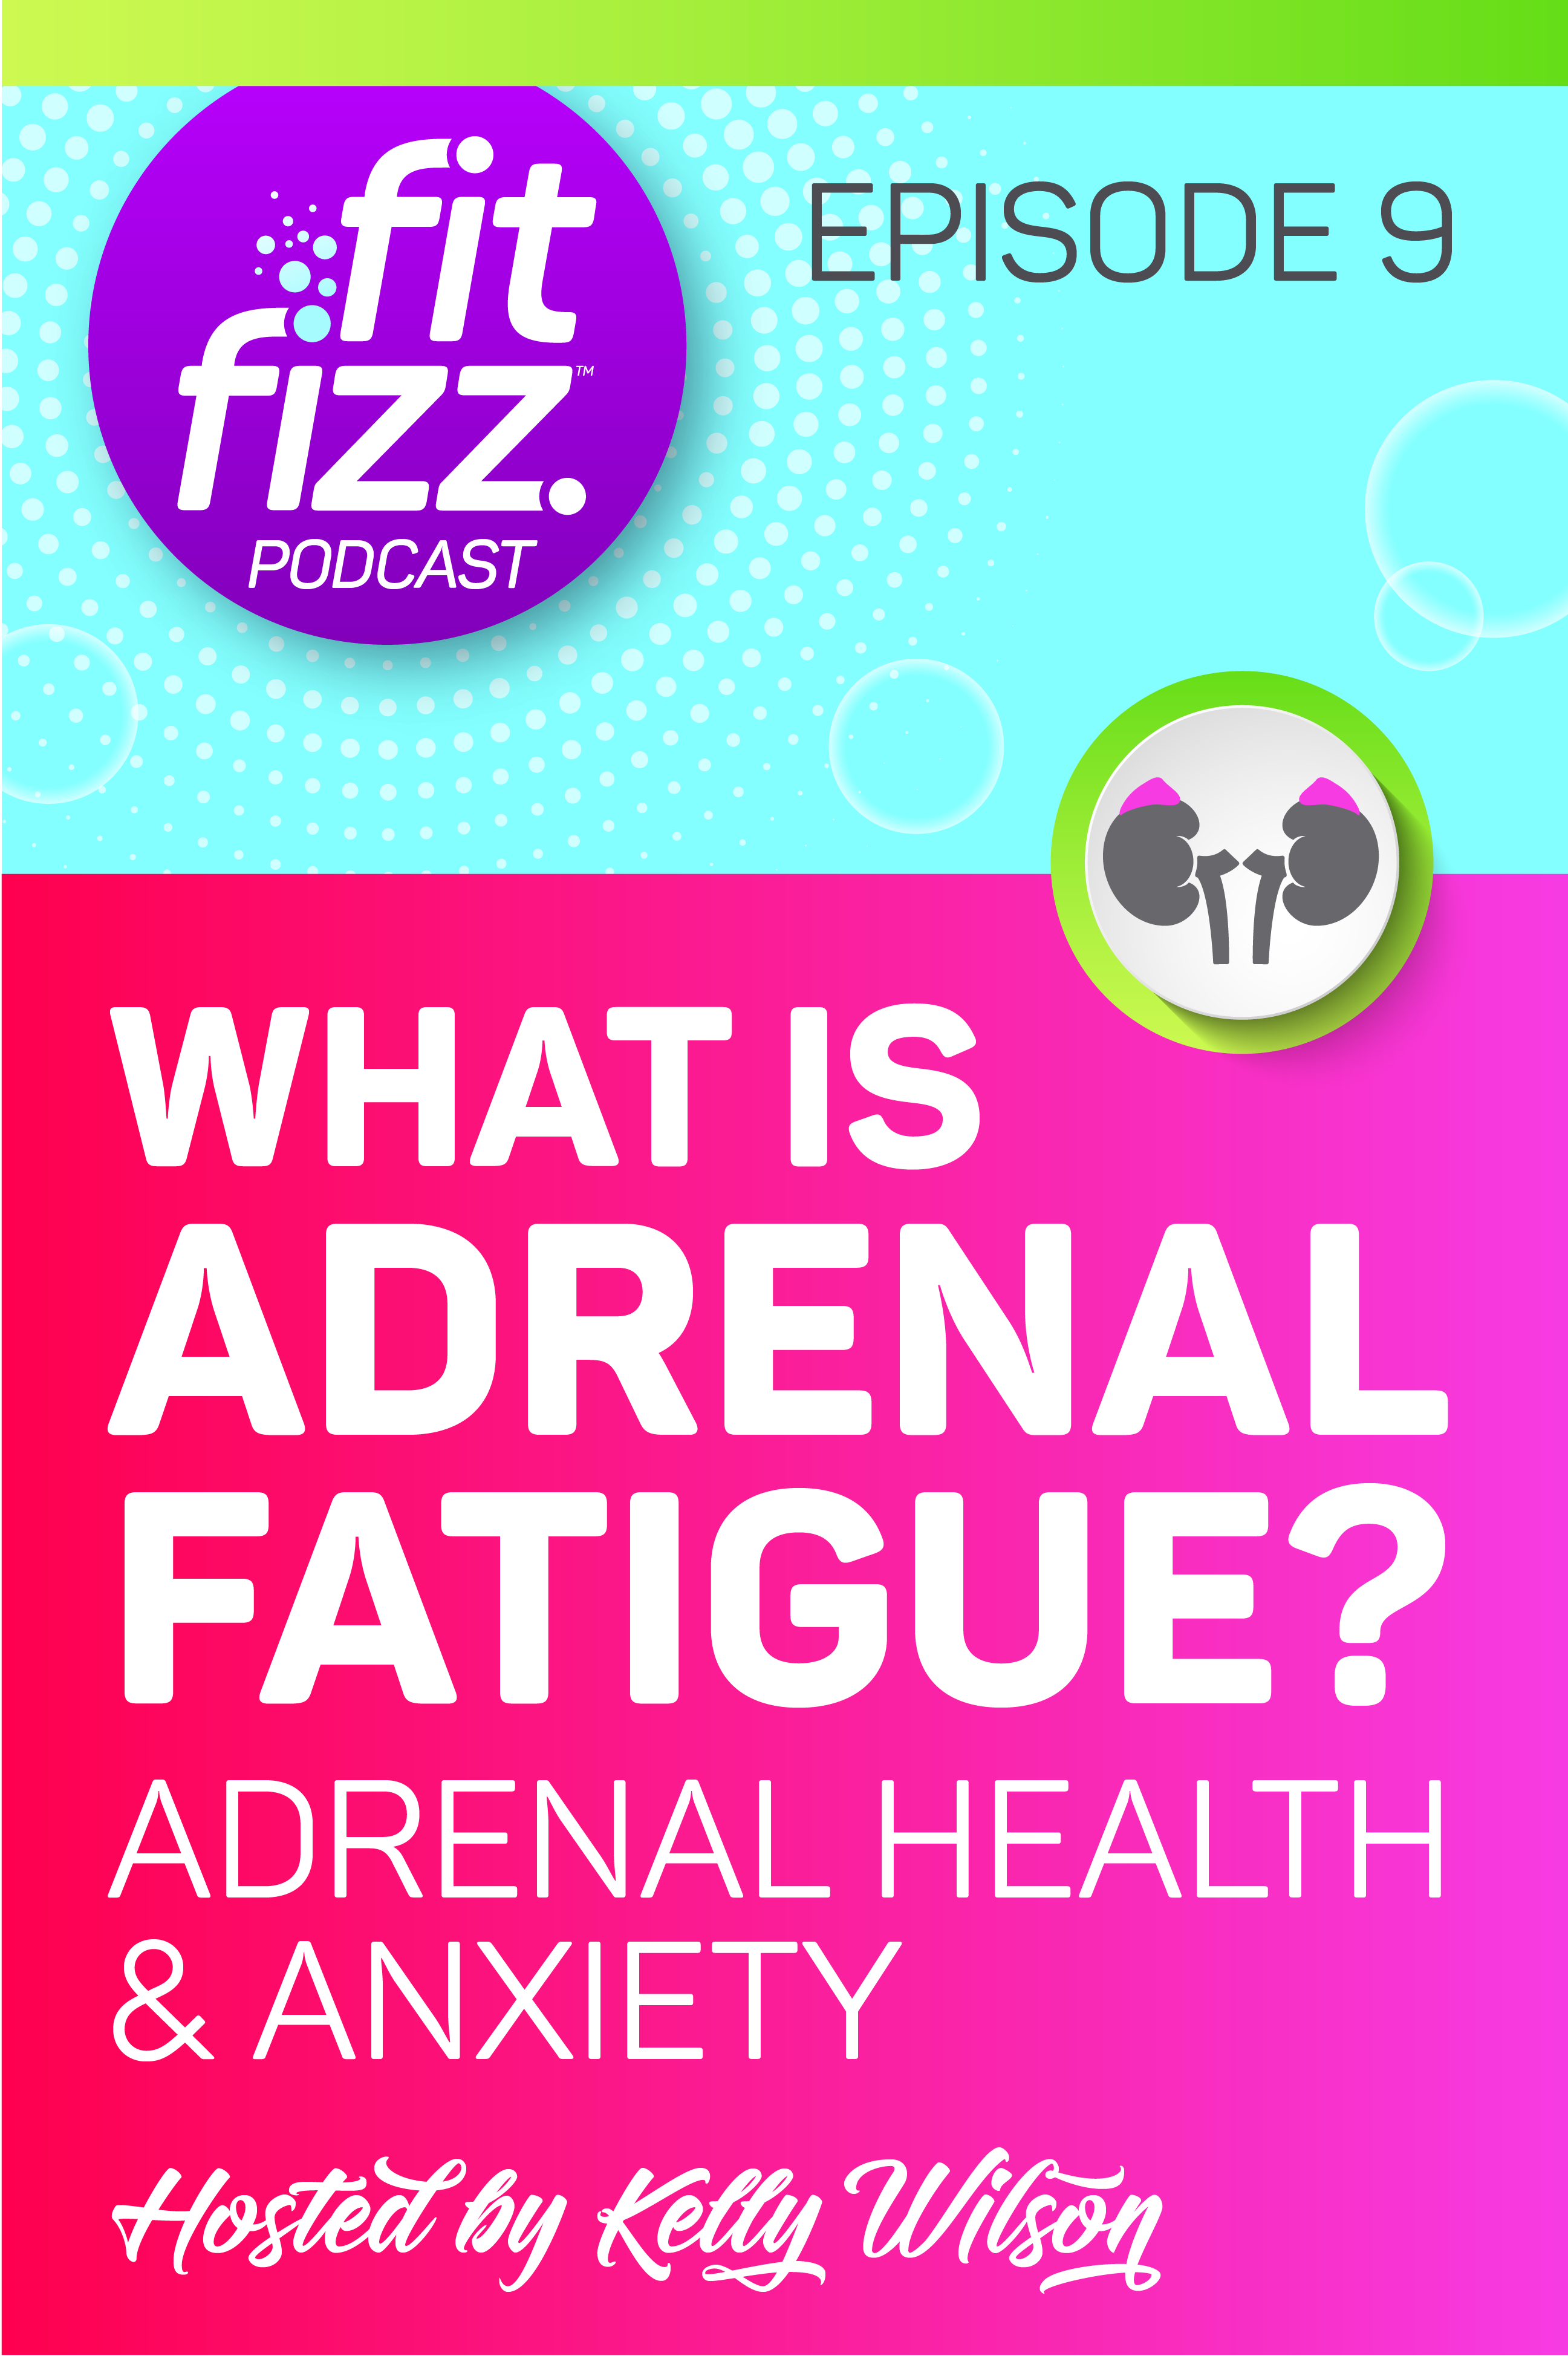 FitFizz Podcast Episode 9: What is Adrenal Fatigue? Adrenal Health and Anxiety